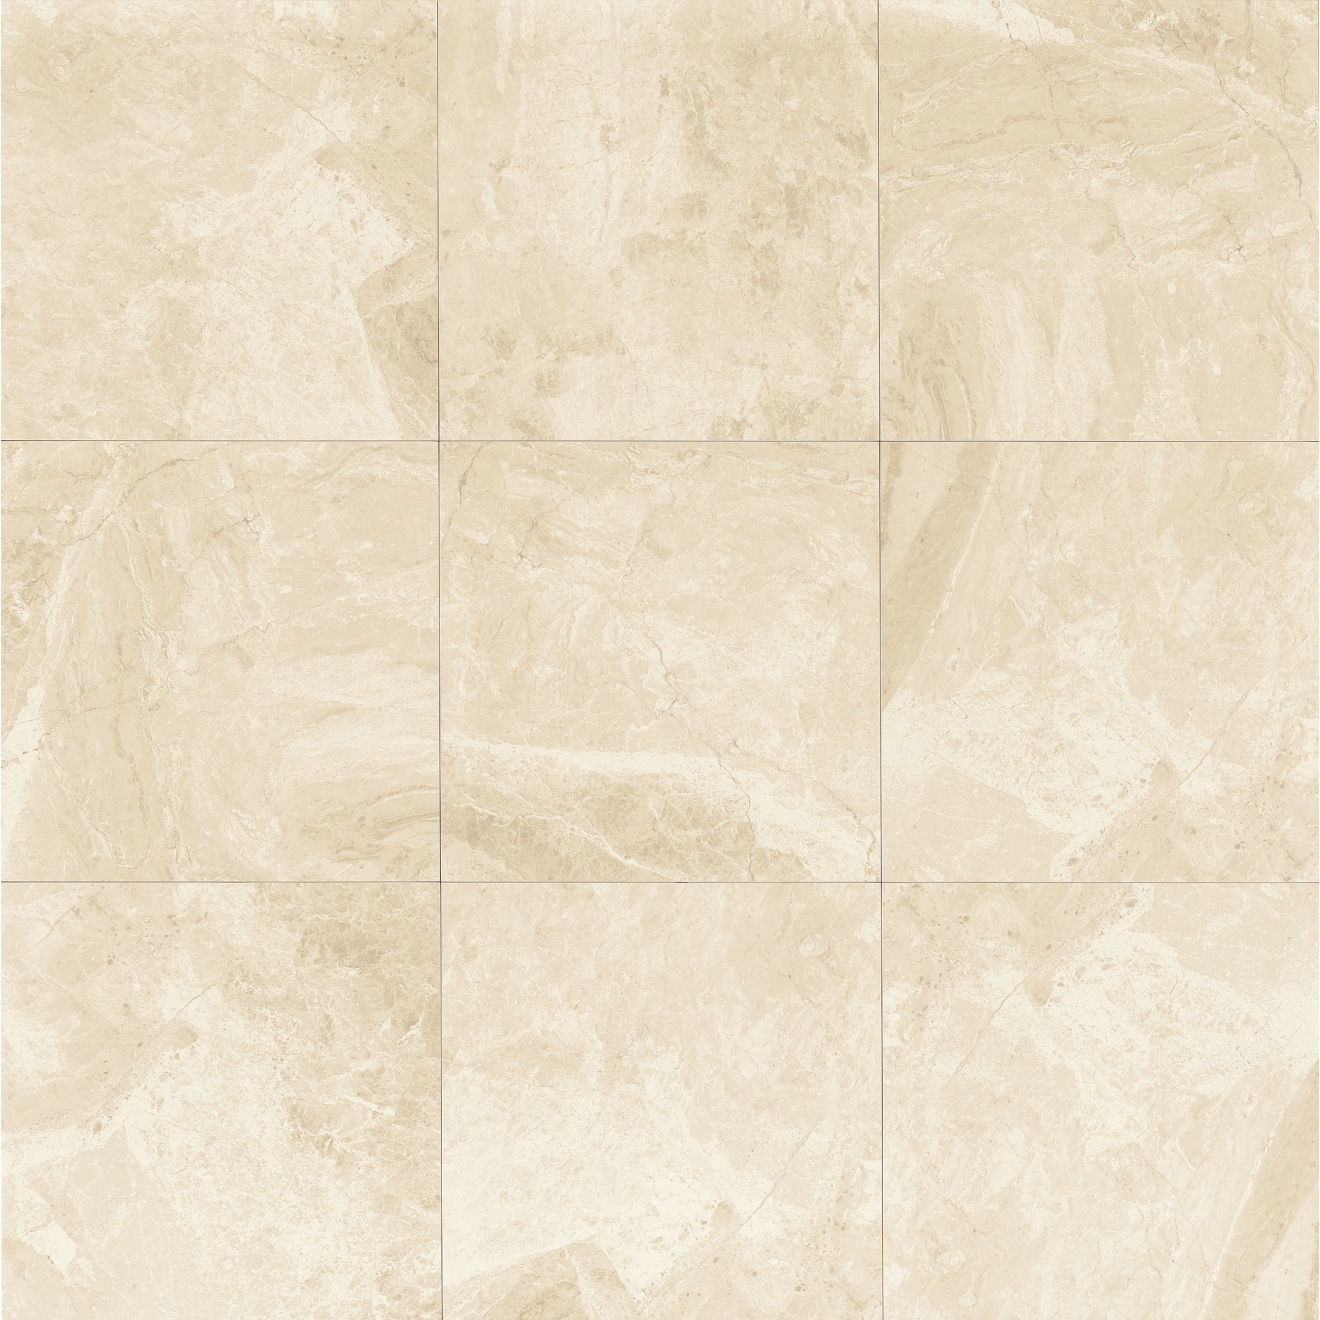 Delighted 18 Floor Tile Tall 2X4 Acoustic Ceiling Tiles Round 3D Ceramic Tiles 4X8 Subway Tile Young Advantages Of Ceramic Tiles WhiteAffordable Ceiling Tiles 12x12 Floor Tile Cremino